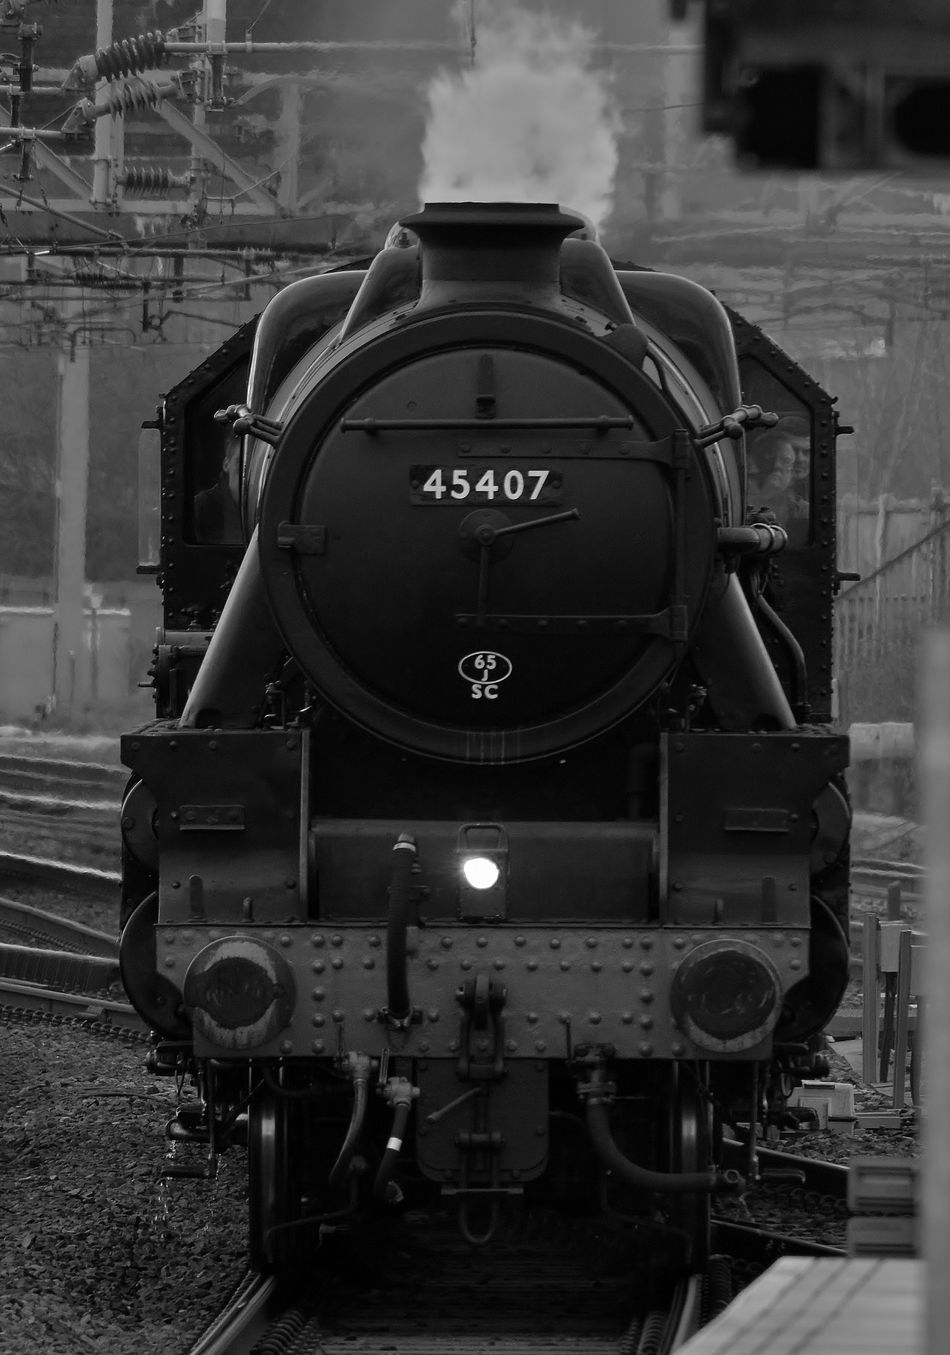 Architecture Black And White Blackandwhite Check This Out Day Hello World Historical Reenactment Locomotive My Photography Nikon Nikon D3200 No People Numbers Old-fashioned Outdoors Rail Transportation Railroad Track Steam Train Taking Photos Train Train - Vehicle Train Station Transportation